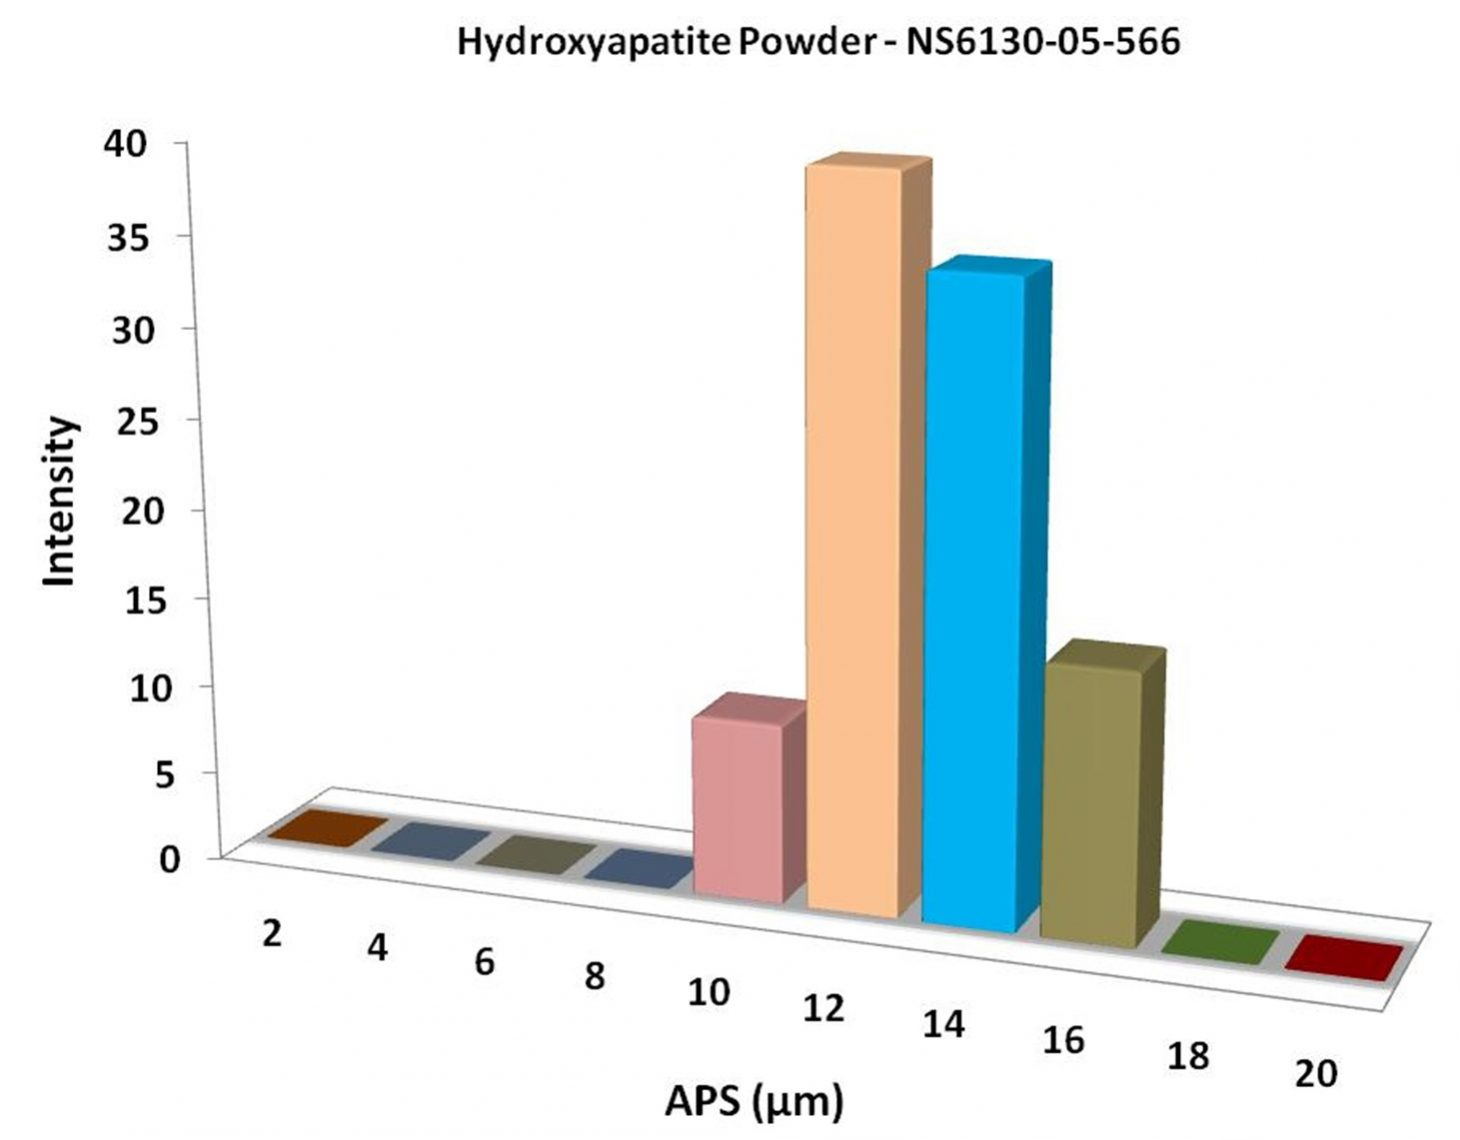 Particles Size Analysis - Hydroxyapatite Powder